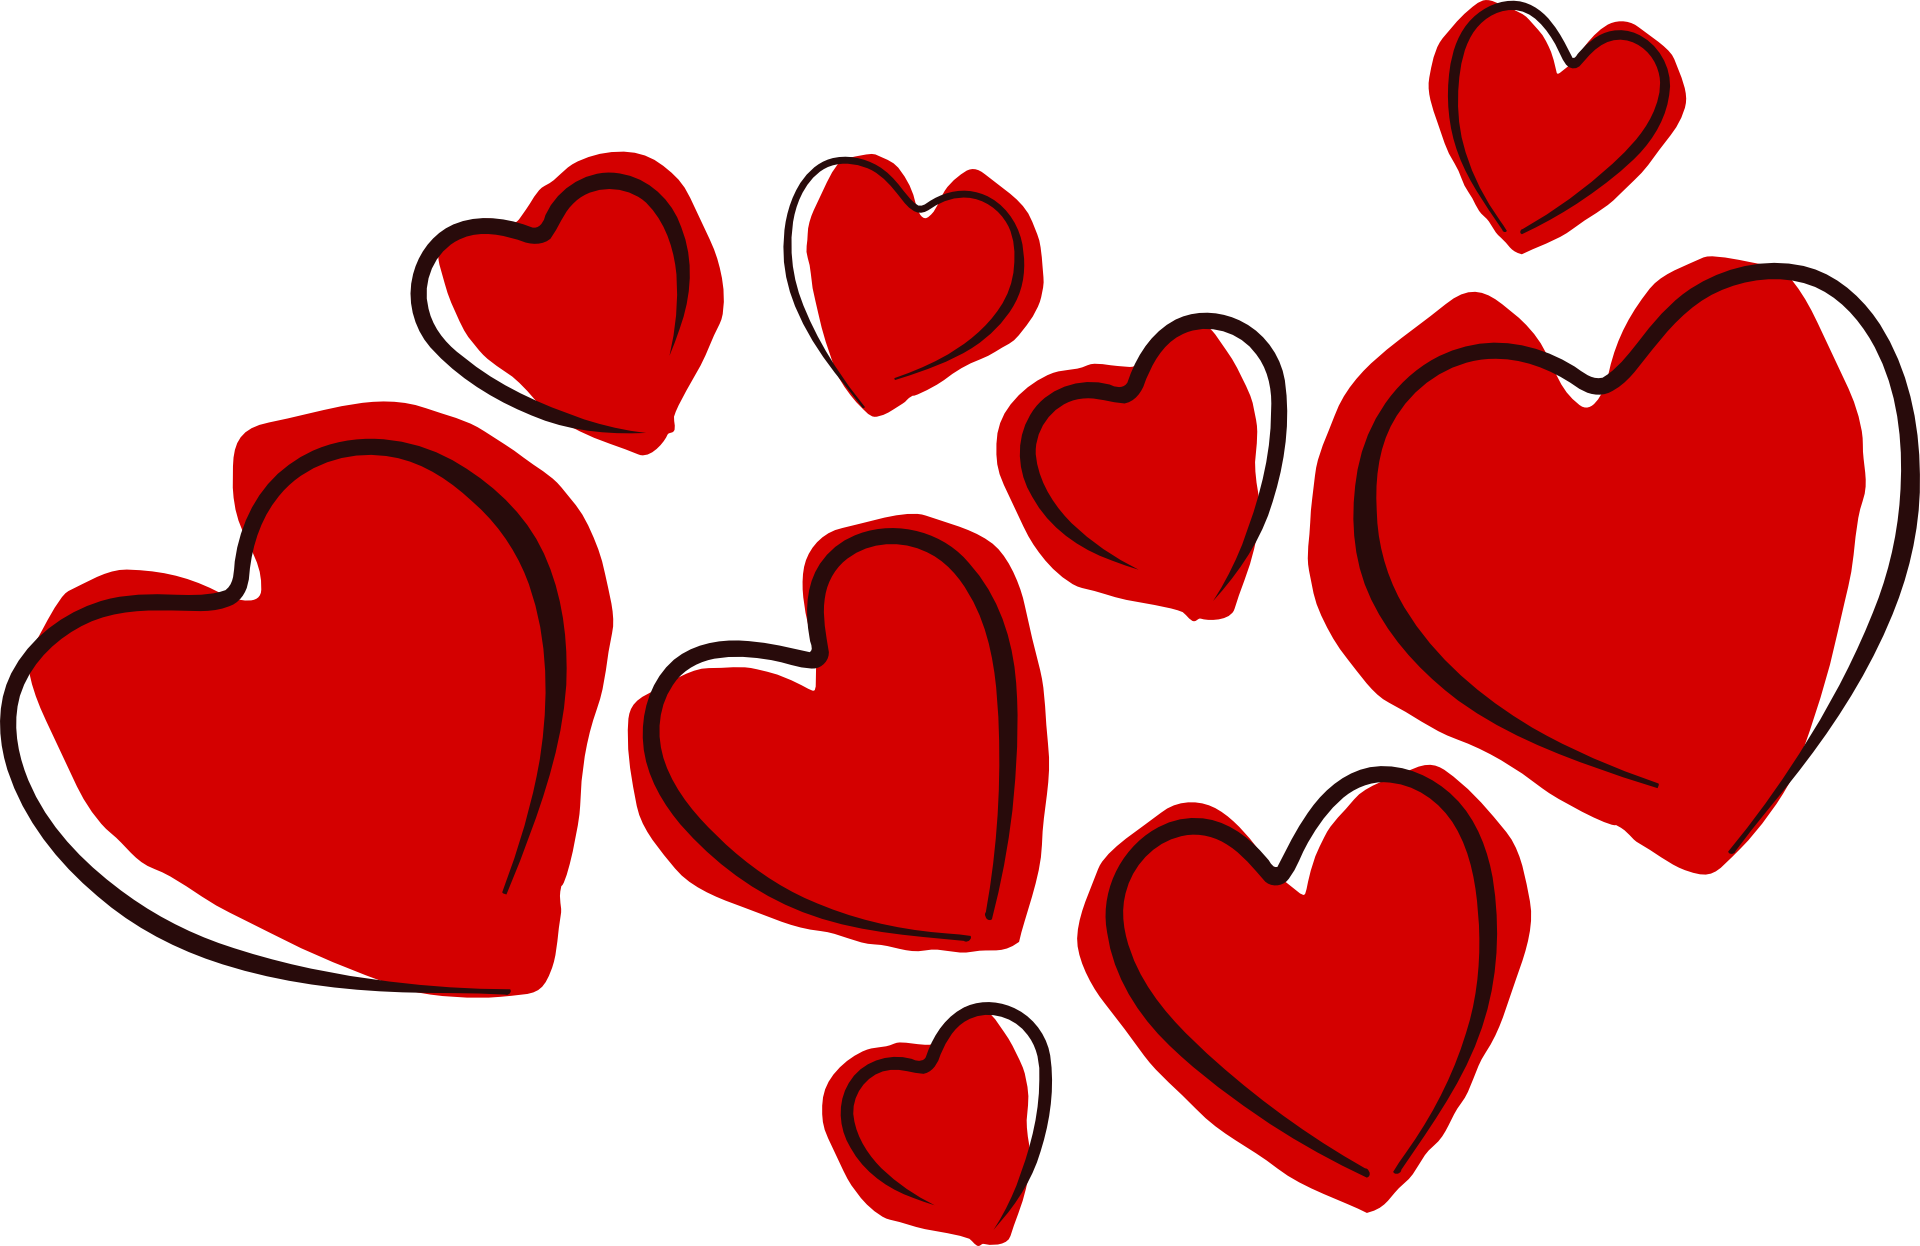 Love Hearts PNG Image.